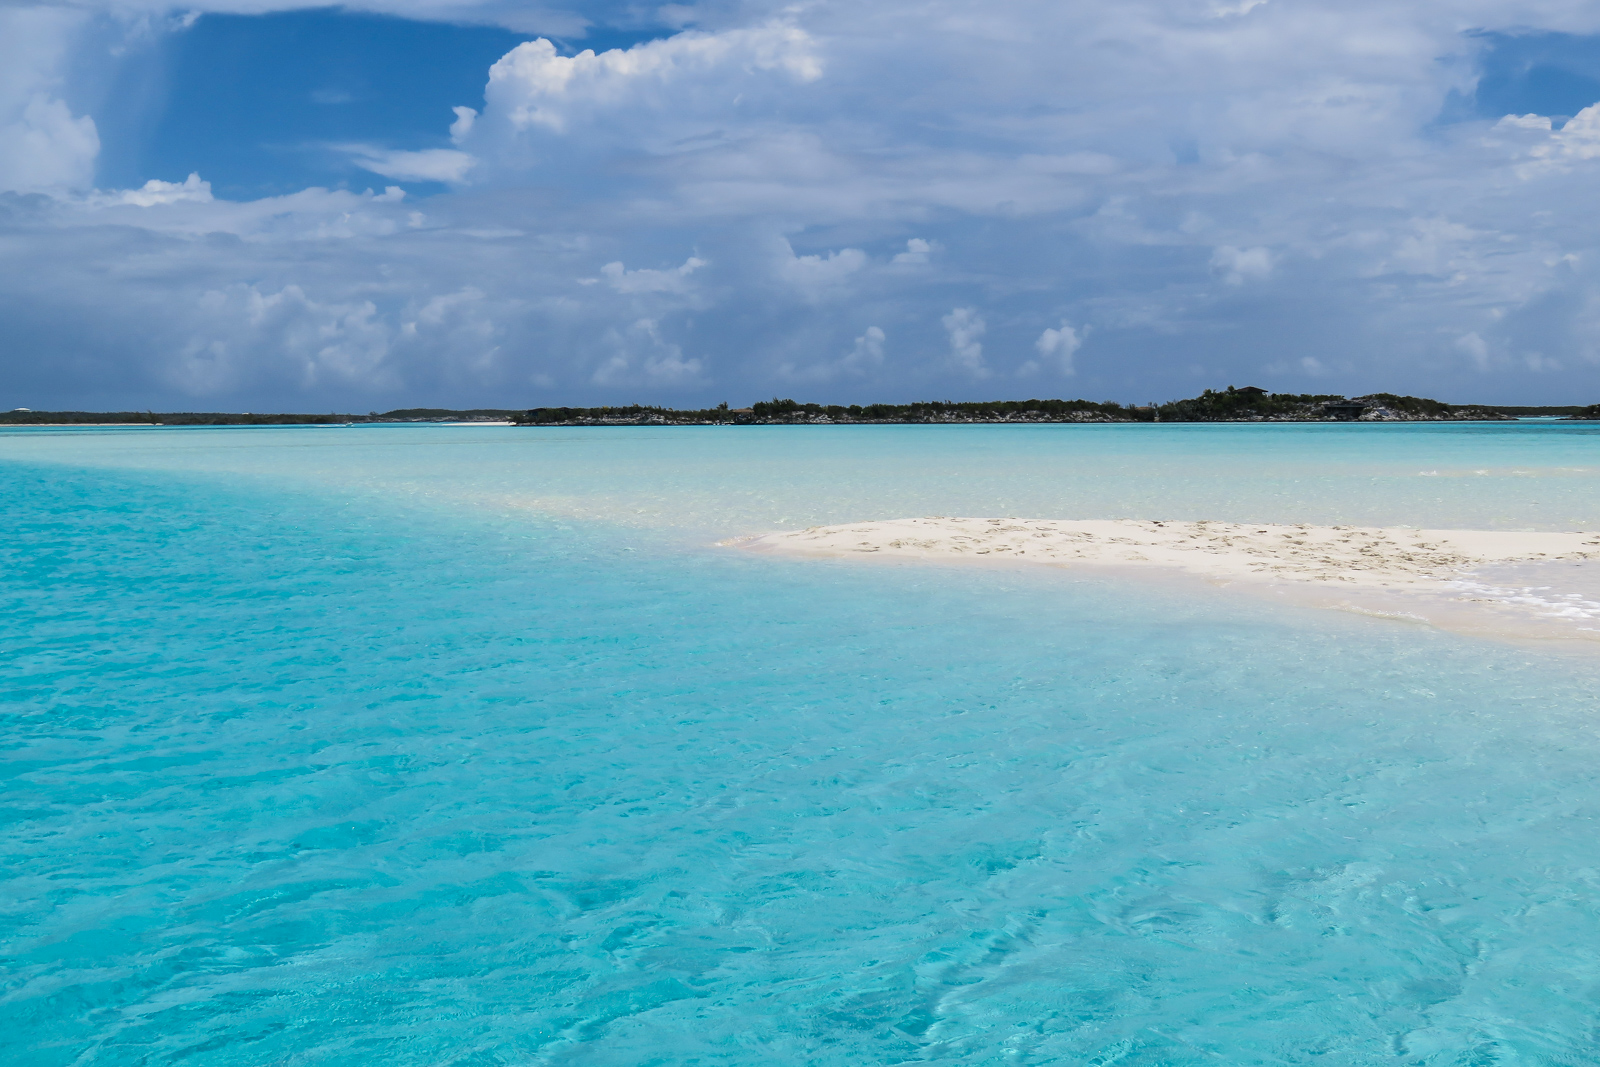 The stunning Sand Bar at Staniel Cay on a one day cruise to Bahamas by plane